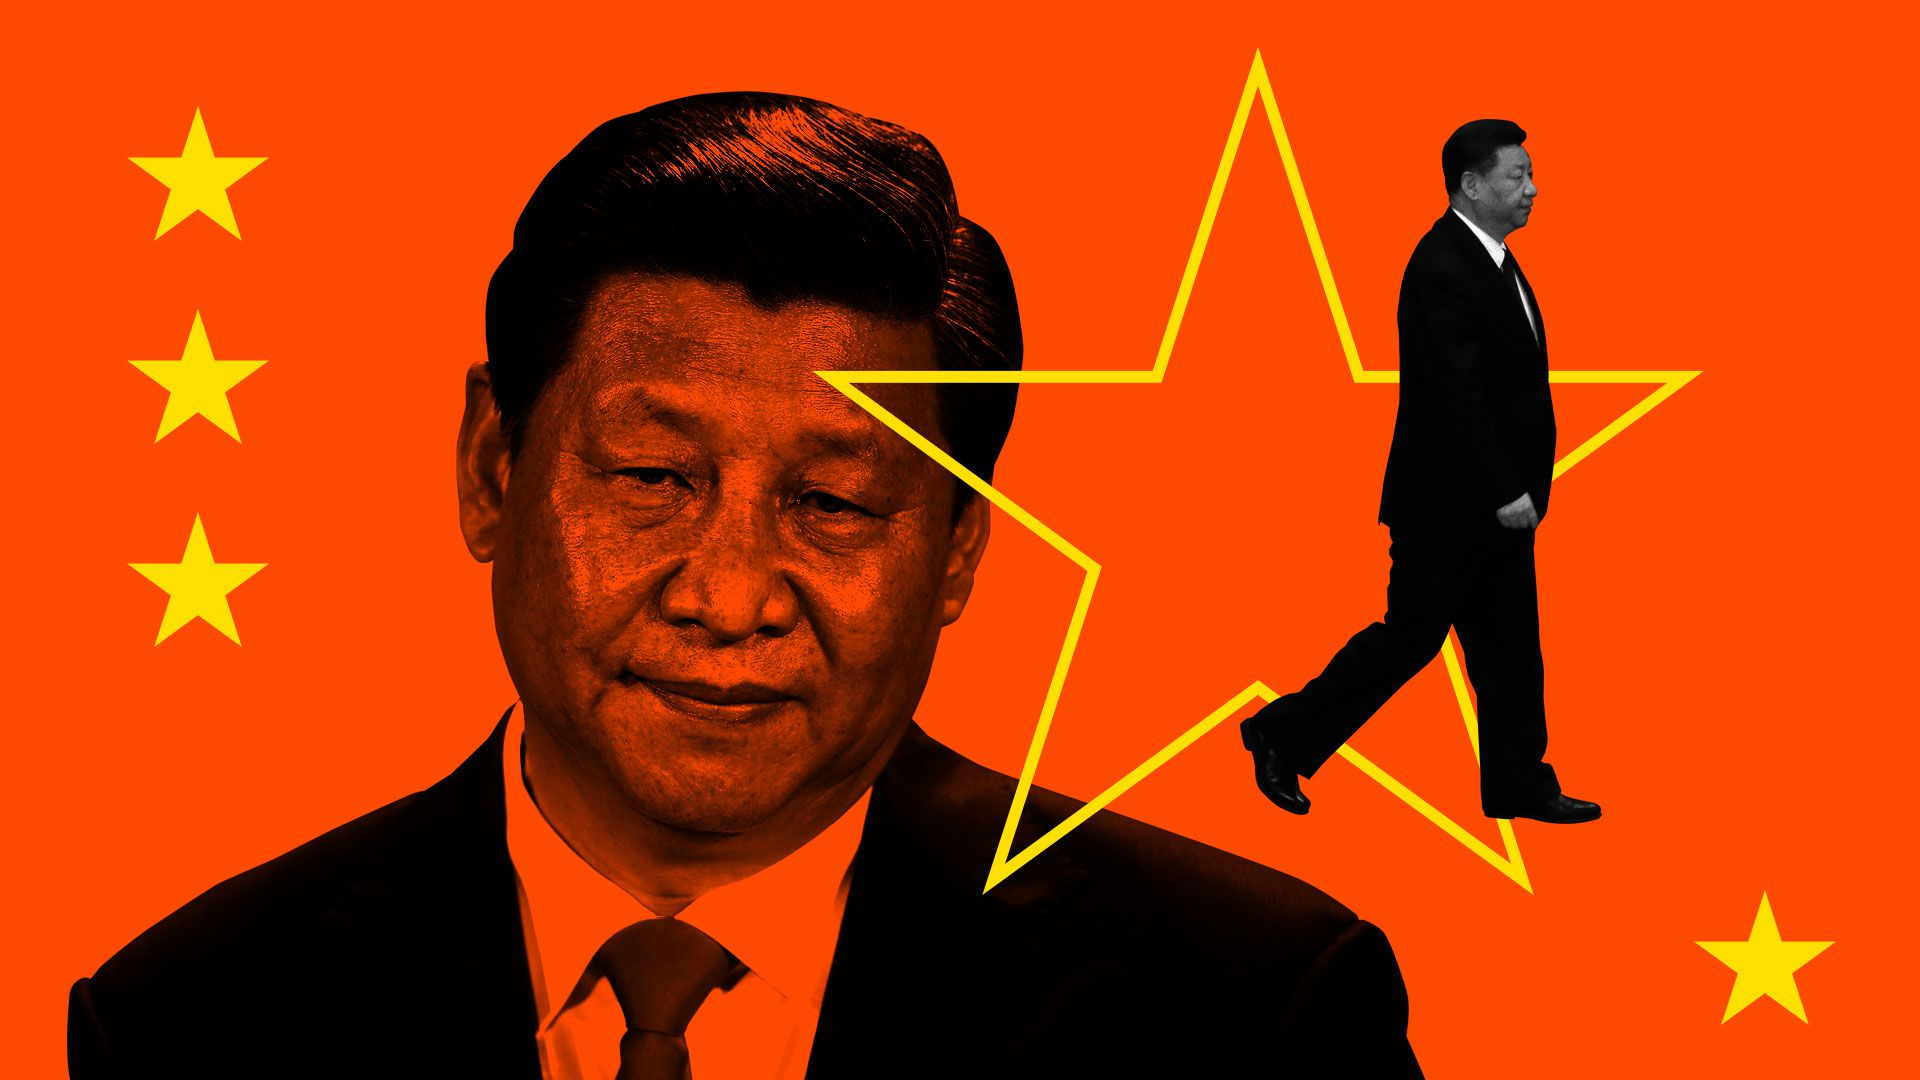 Xi Jinping behind a Chinese star